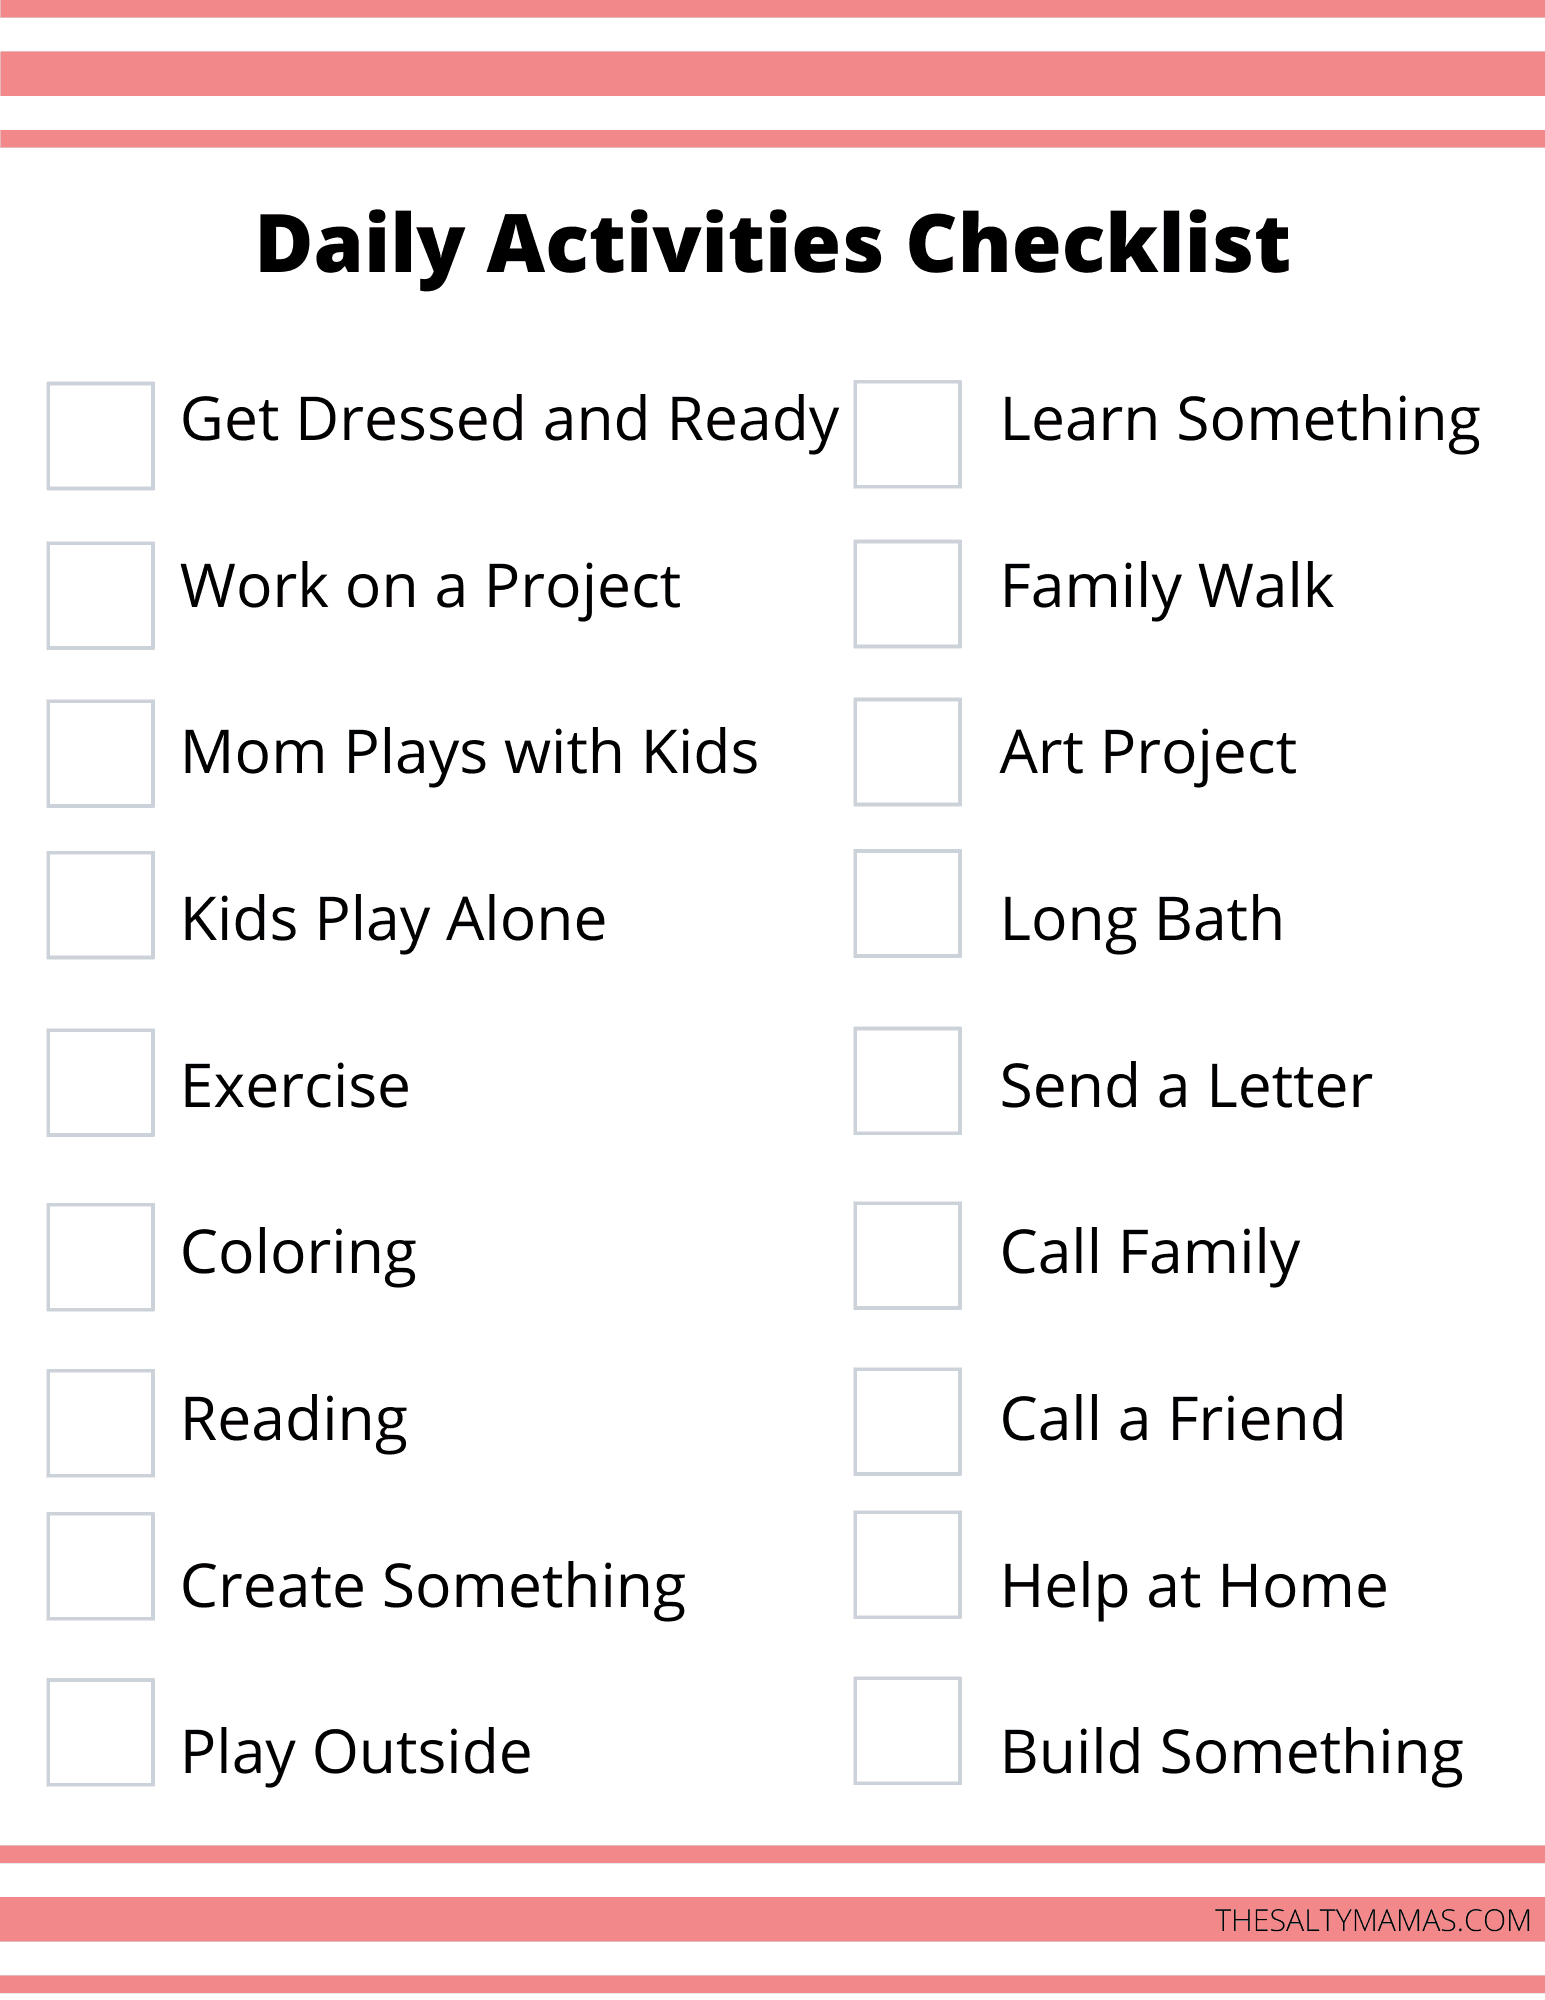 Example of a Daily activities checklist sheet.